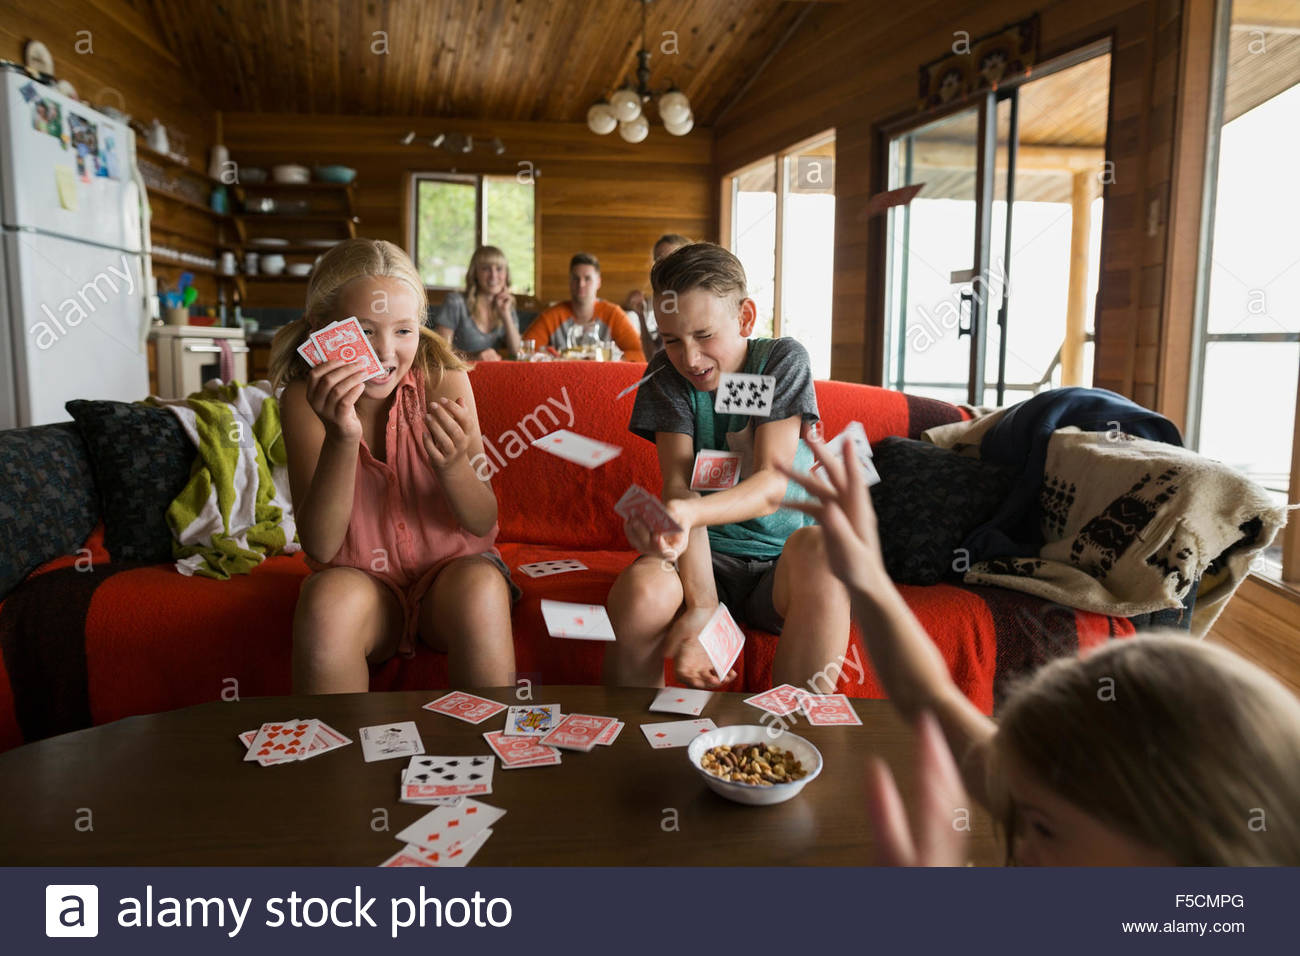 Playful cousins flicking cards in cabin Stock Photo